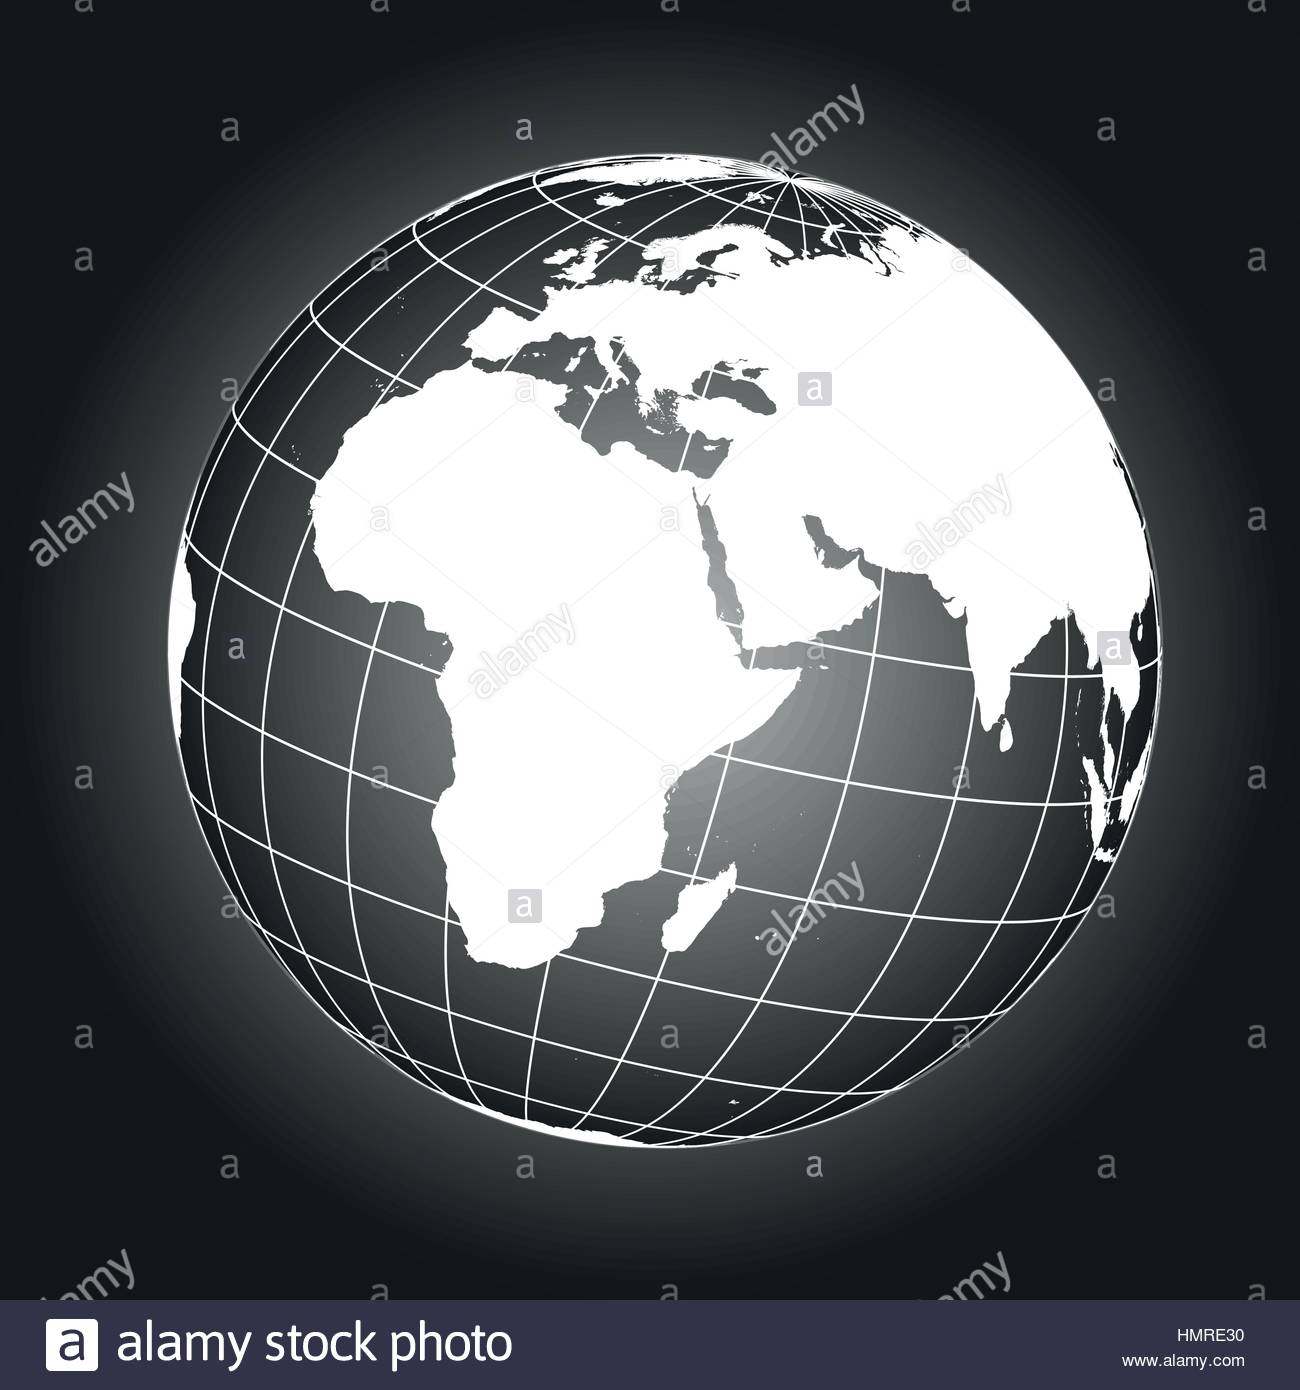 europe and africa map europe africa russia asia north pole greenland earth globe worldmap elements of this image furnished by nasa